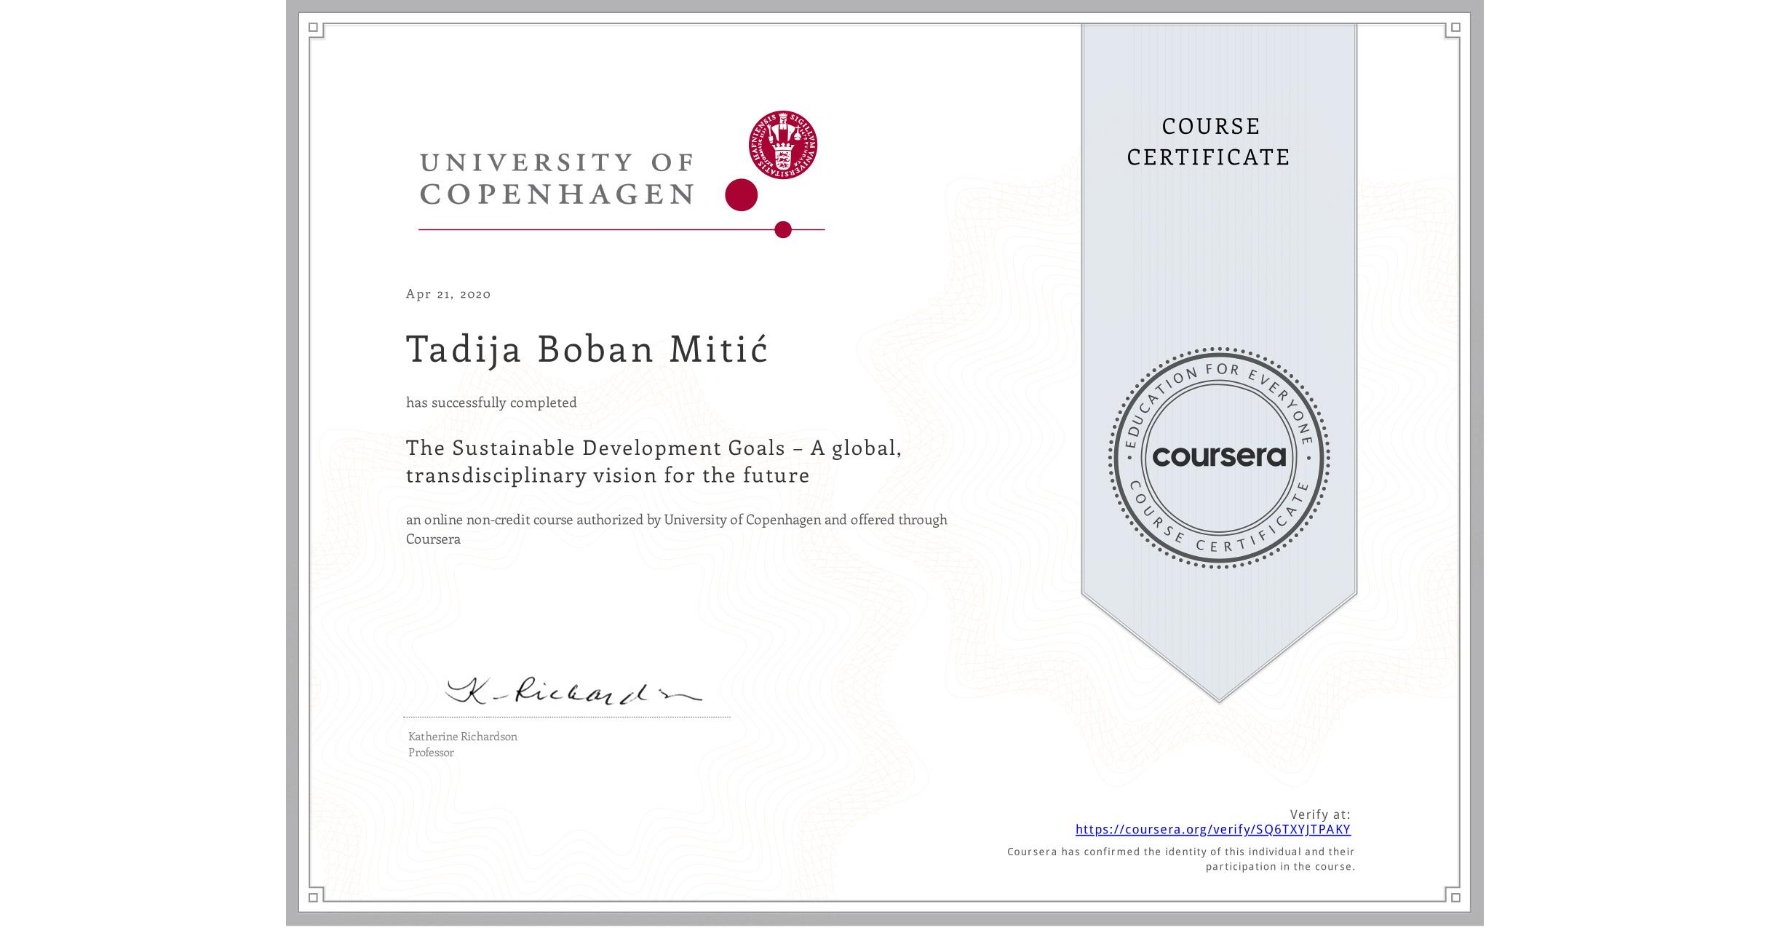 View certificate for Tadija Boban Mitić, The Sustainable Development Goals – A global, transdisciplinary vision for the future, an online non-credit course authorized by University of Copenhagen and offered through Coursera